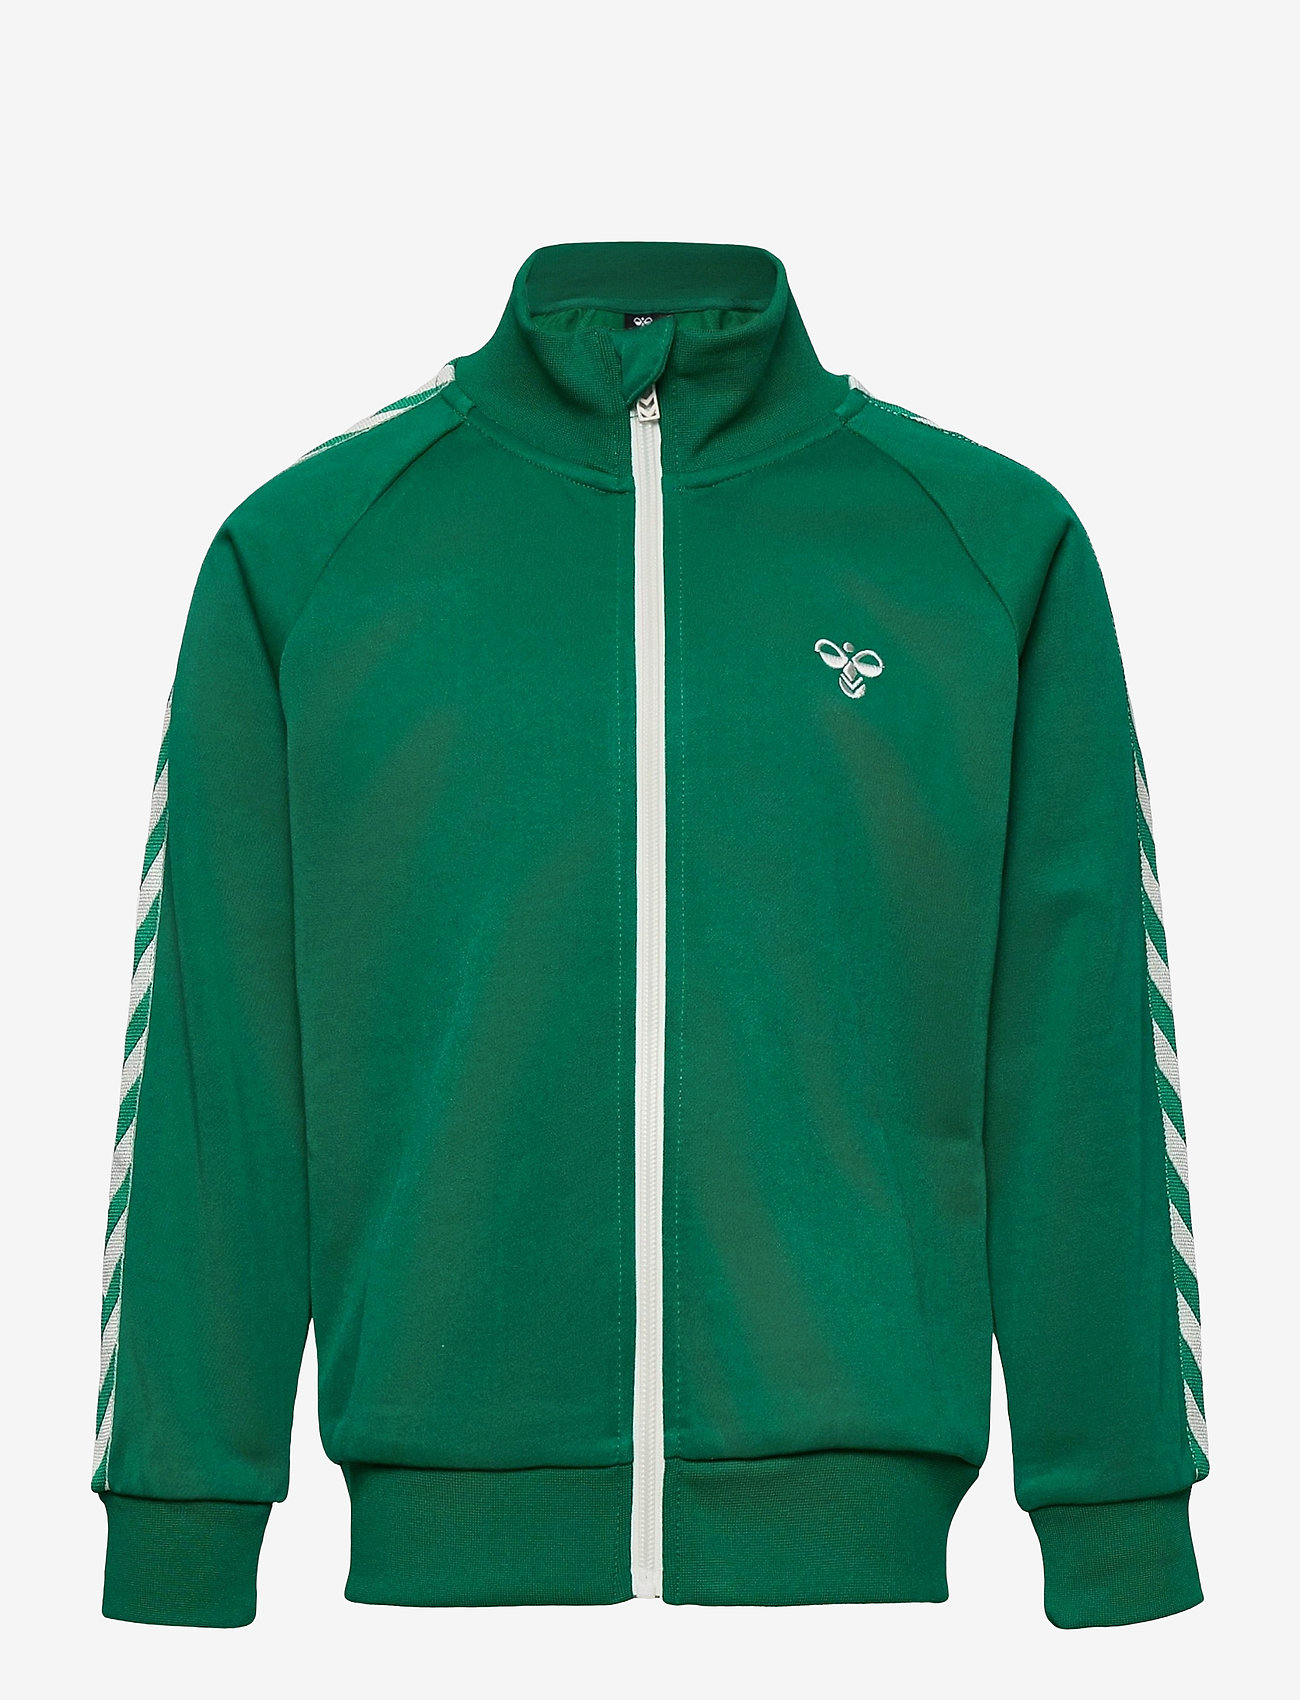 Hummel - HMLKICK ZIP JACKET - sweatshirts - ultramarine green - 0